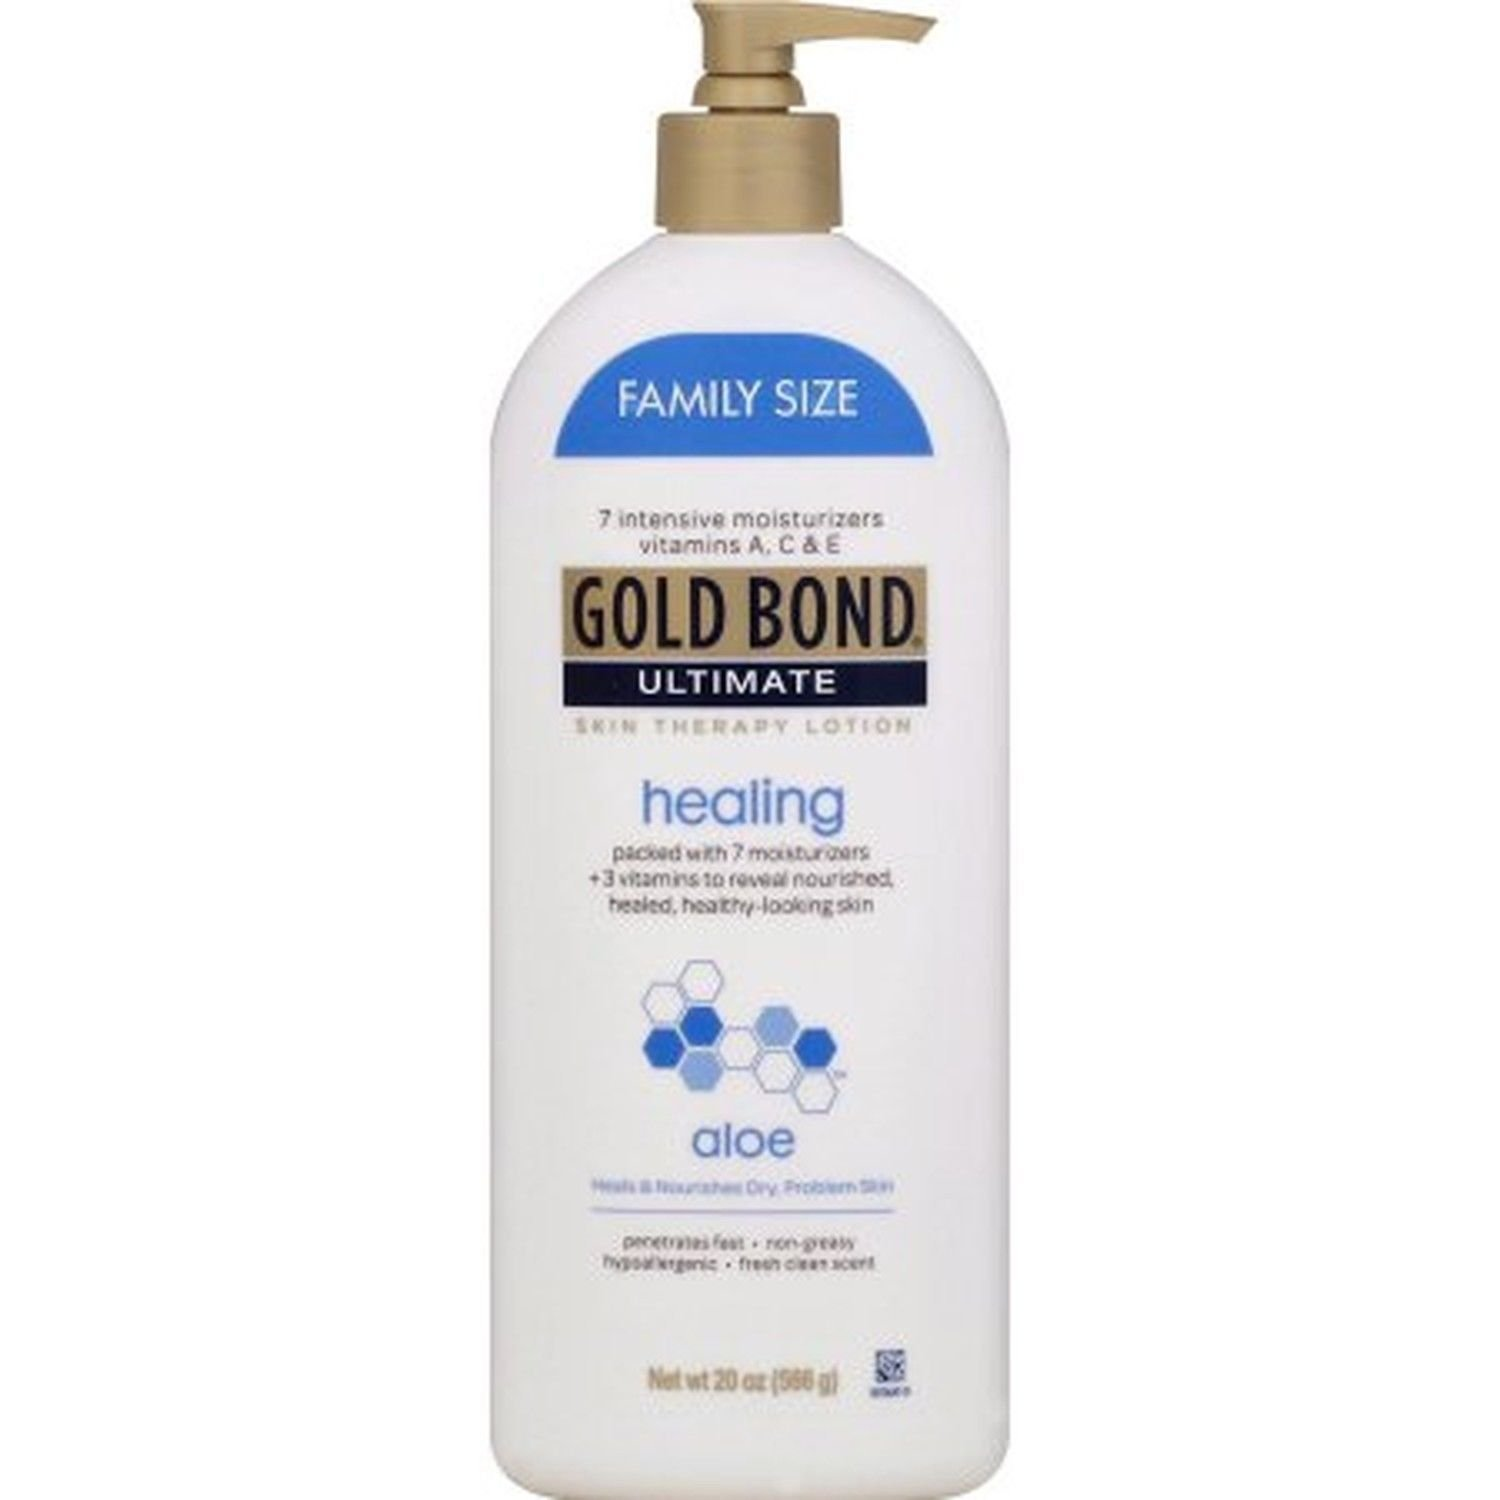 Gold Bond Ultimate Healing Skin Therapy Lotion with Aloe, 20 oz BRAND NEW